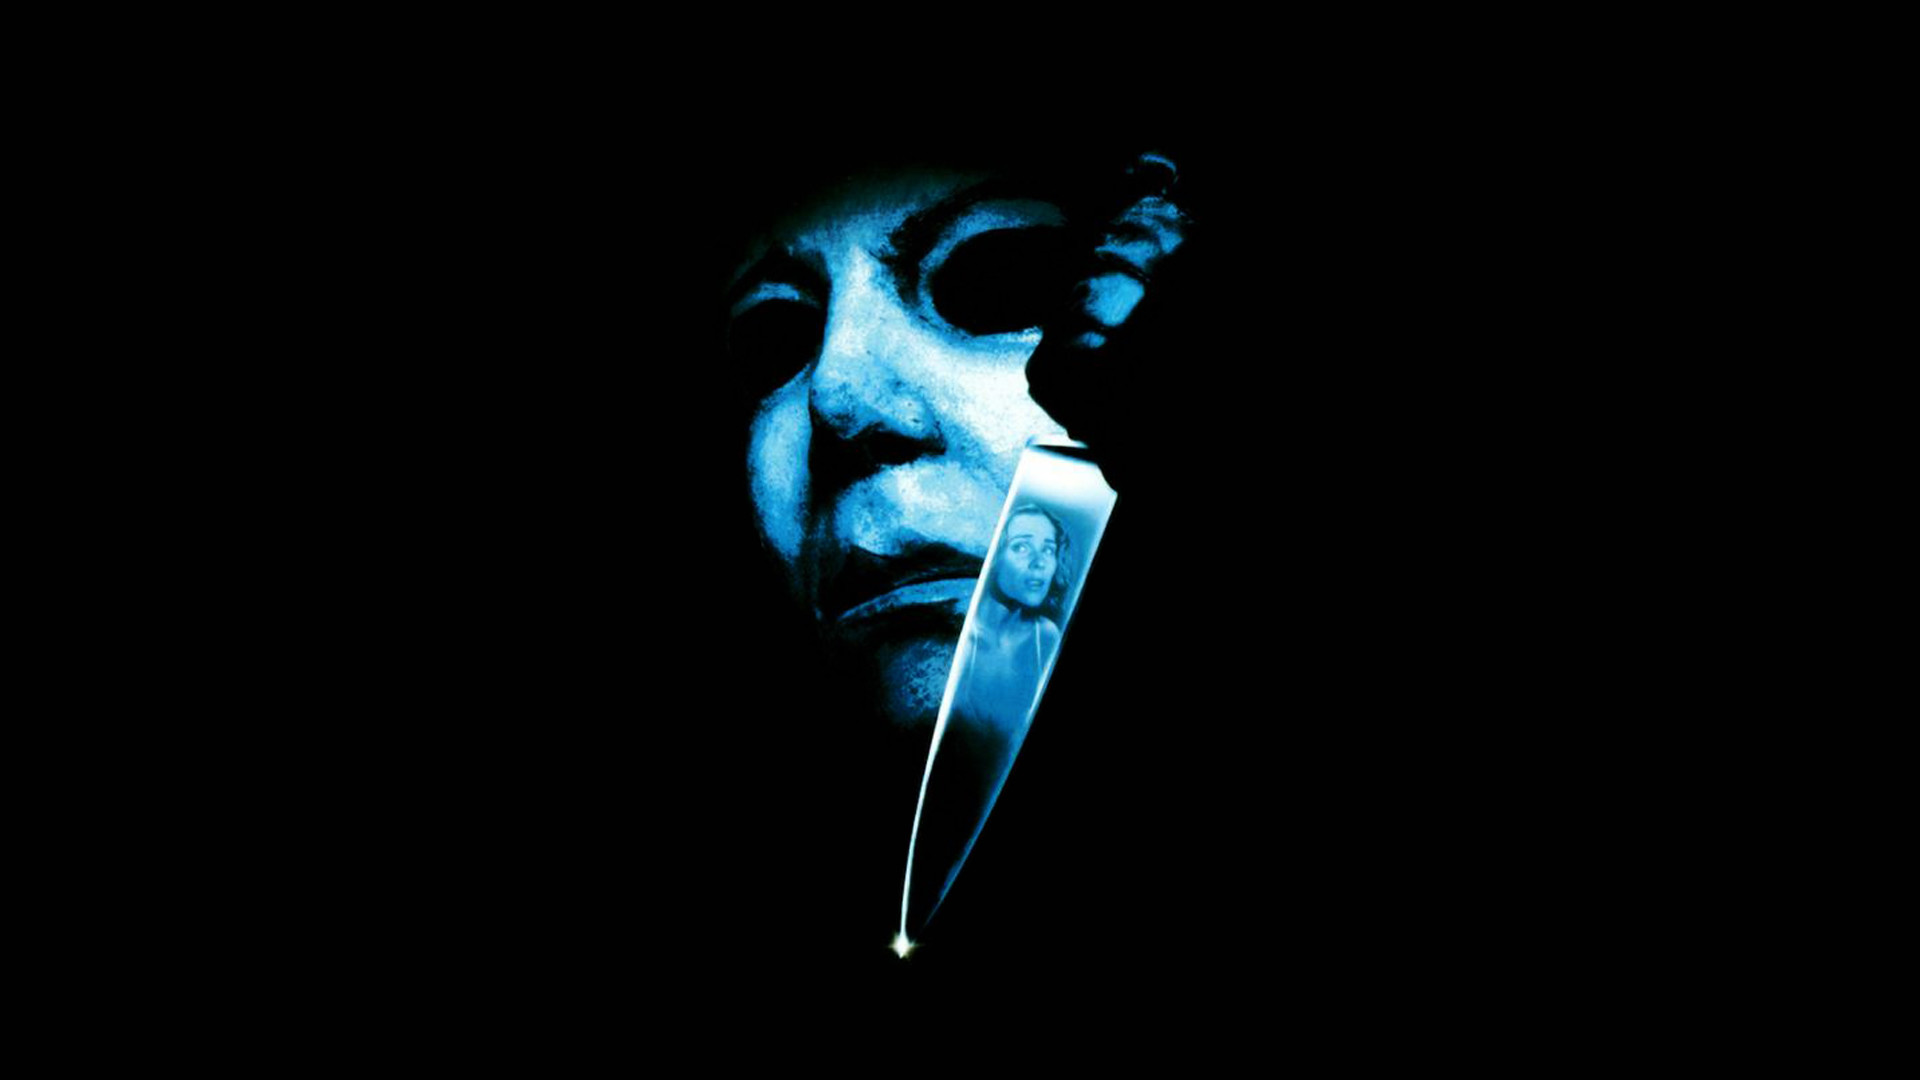 Backgrounds For Myers Halloween Scary Desktop Backgrounds. Michael Myers  Wallpapers Wallpapers HD …